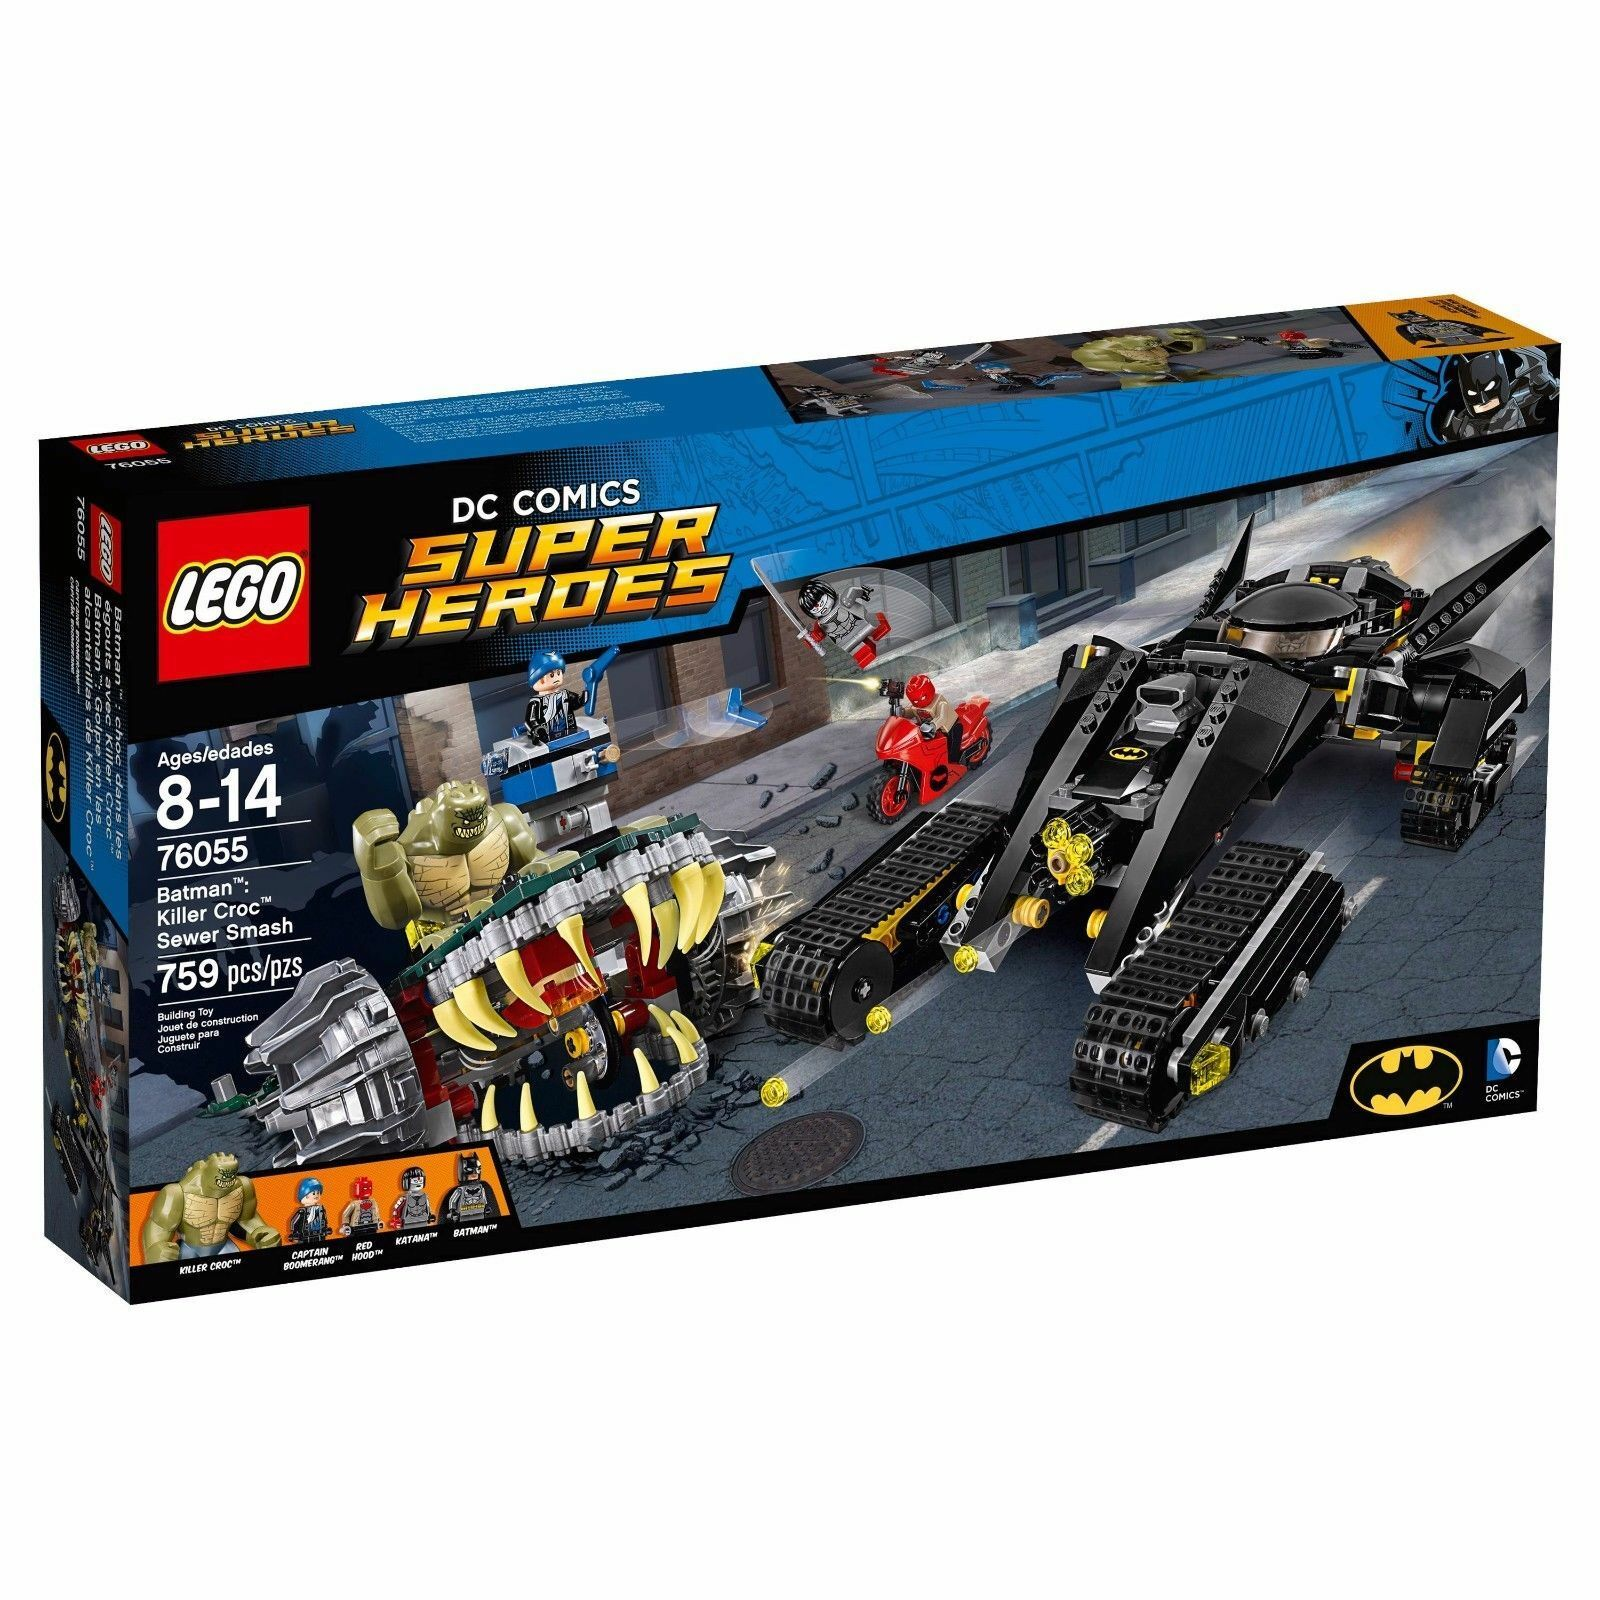 76055 BATMAN KILLER CROC SEWER SMASH lego NEW dc super heroes LEGOS set rosso hood